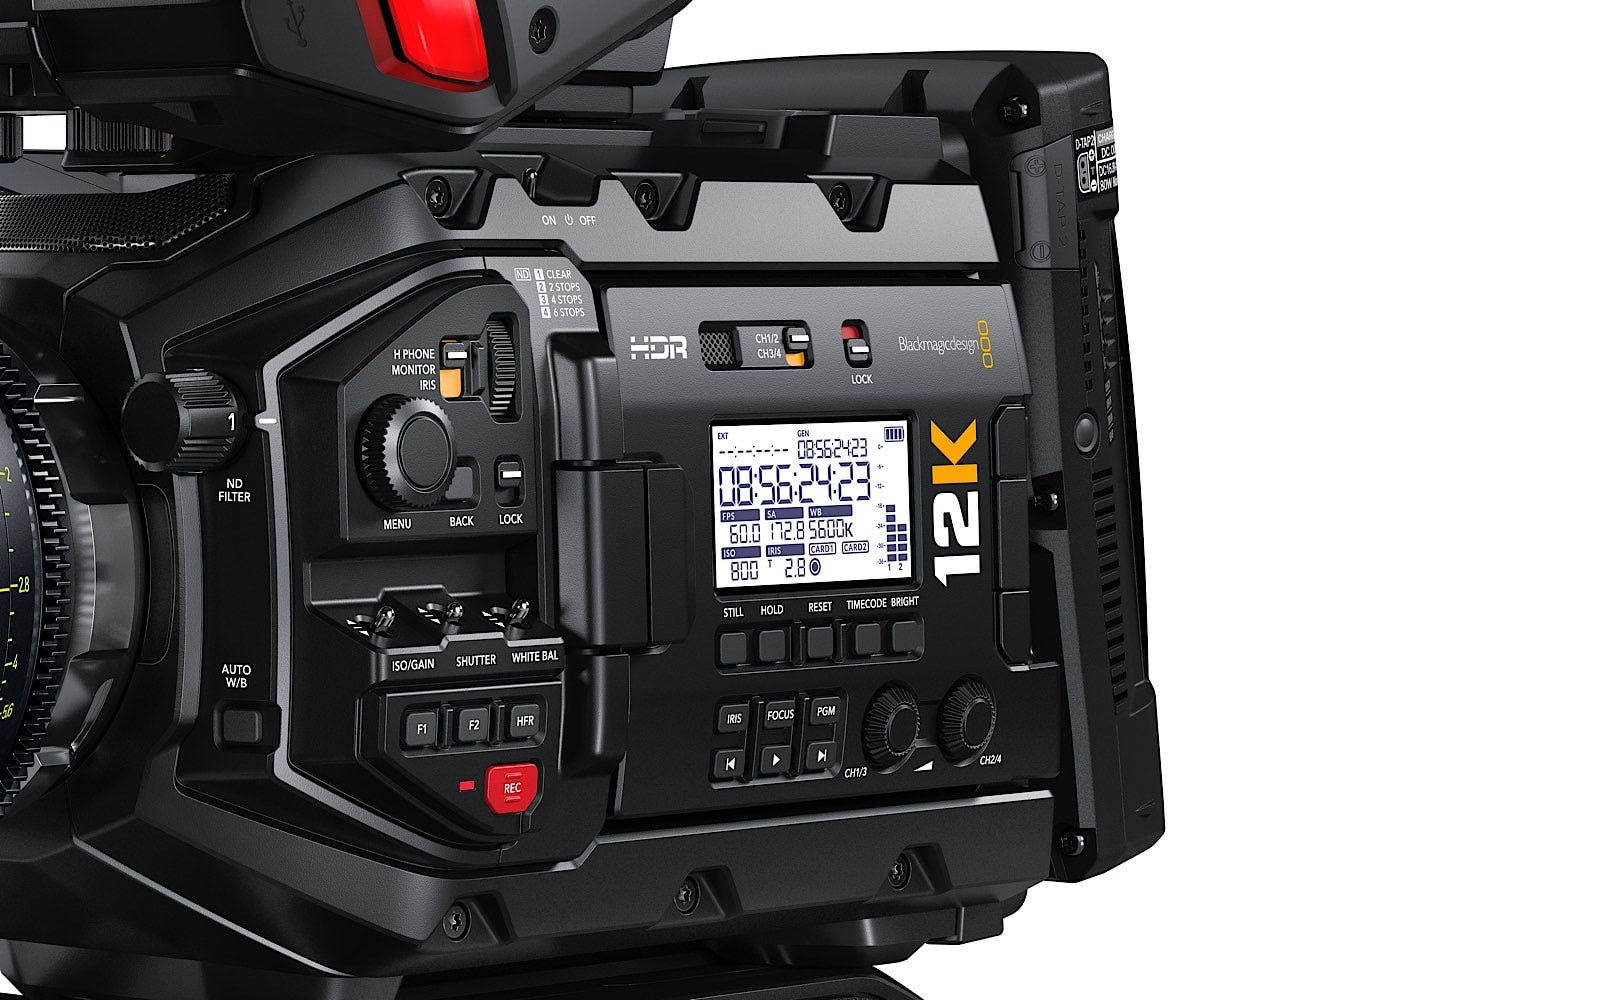 Blackmagic's 12K camera